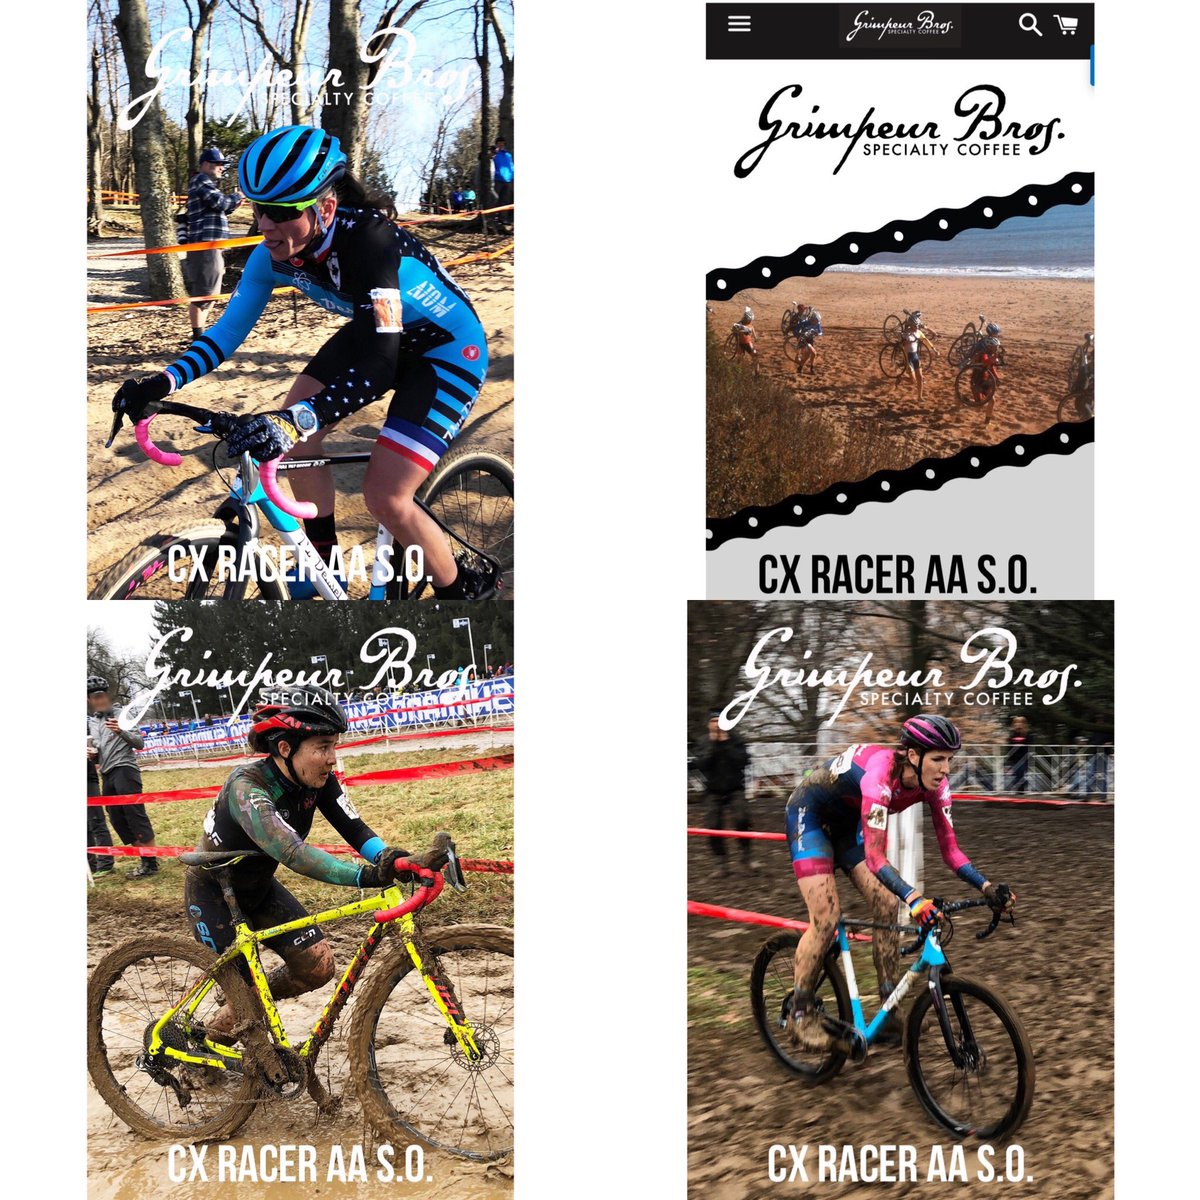 Introducing V. 2 of #CX RACER SINGLE ORIGIN AA COFFEE from Kenya available exclusively @  http:// GrimpeurBros.com    !  @carolinemani (upper left) is racing #tongueout #headshaking at da BERN WC on Sunday!!! SLAY FRENCHIE SLAY!!!  #racecross #beawsome #cycling #bikes #cyclocross<br>http://pic.twitter.com/OiZSJp5f3U